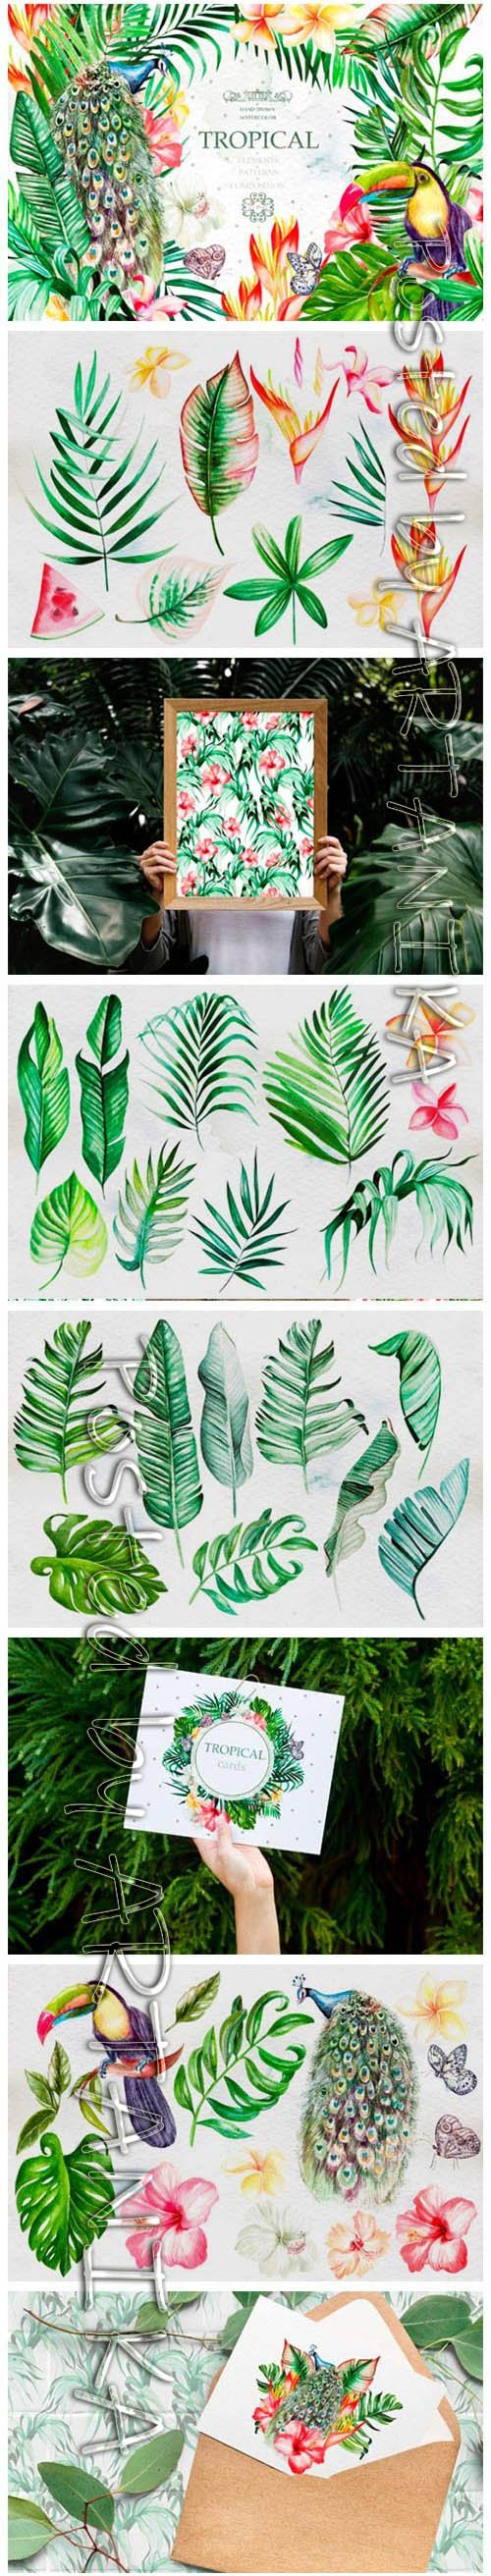 Hand Drawn Watercolor Tropic 4 2153776